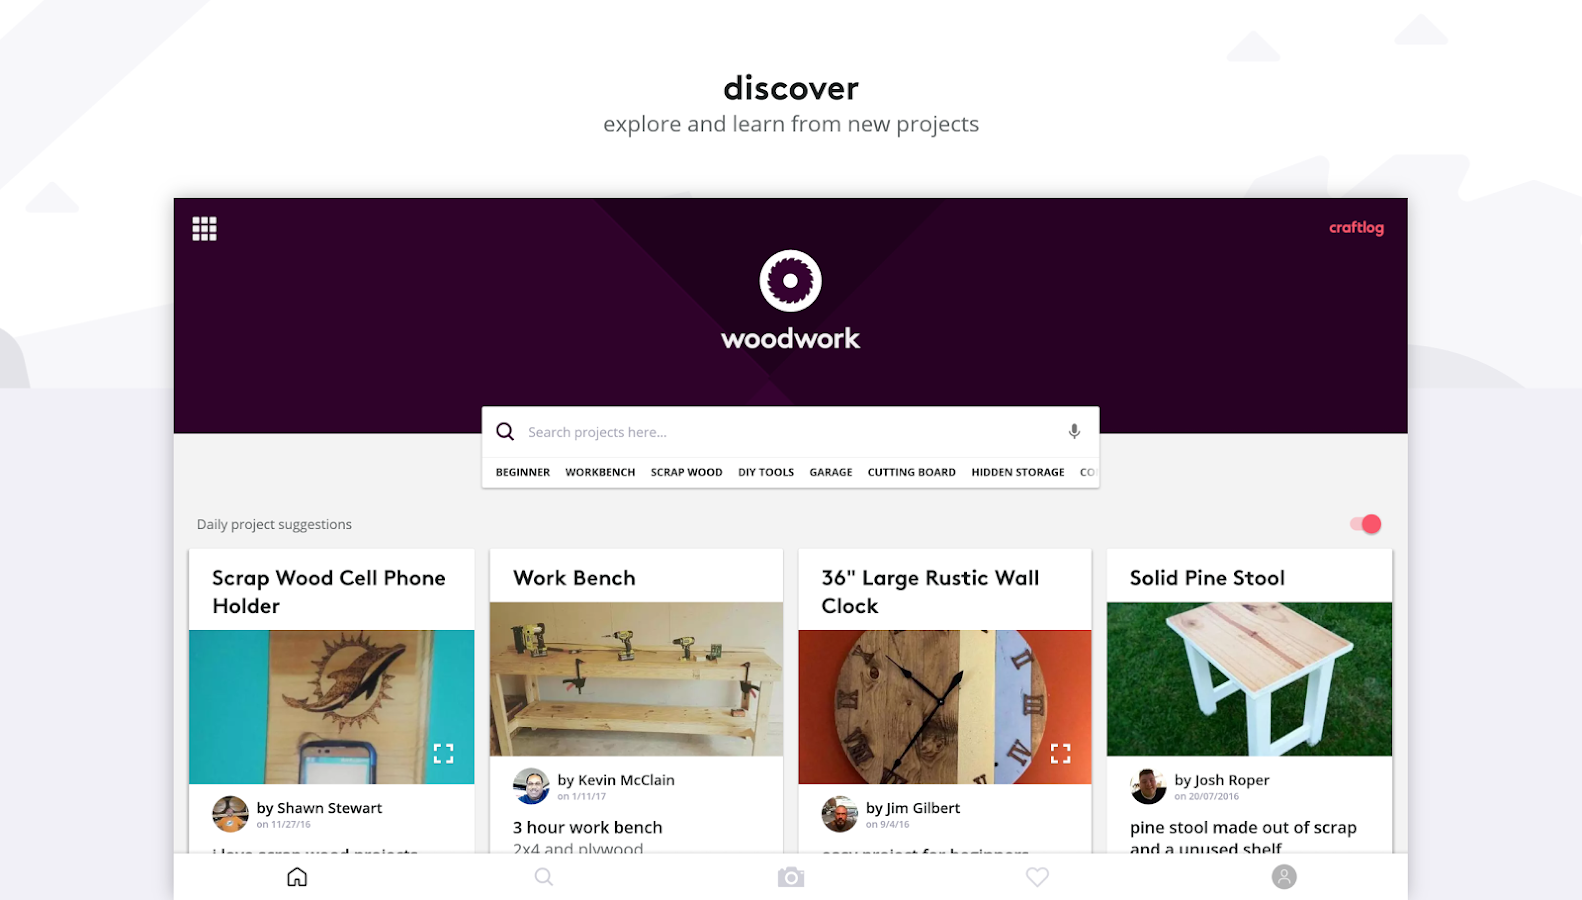 Woodworking Android Apps on Google Play - My Blog